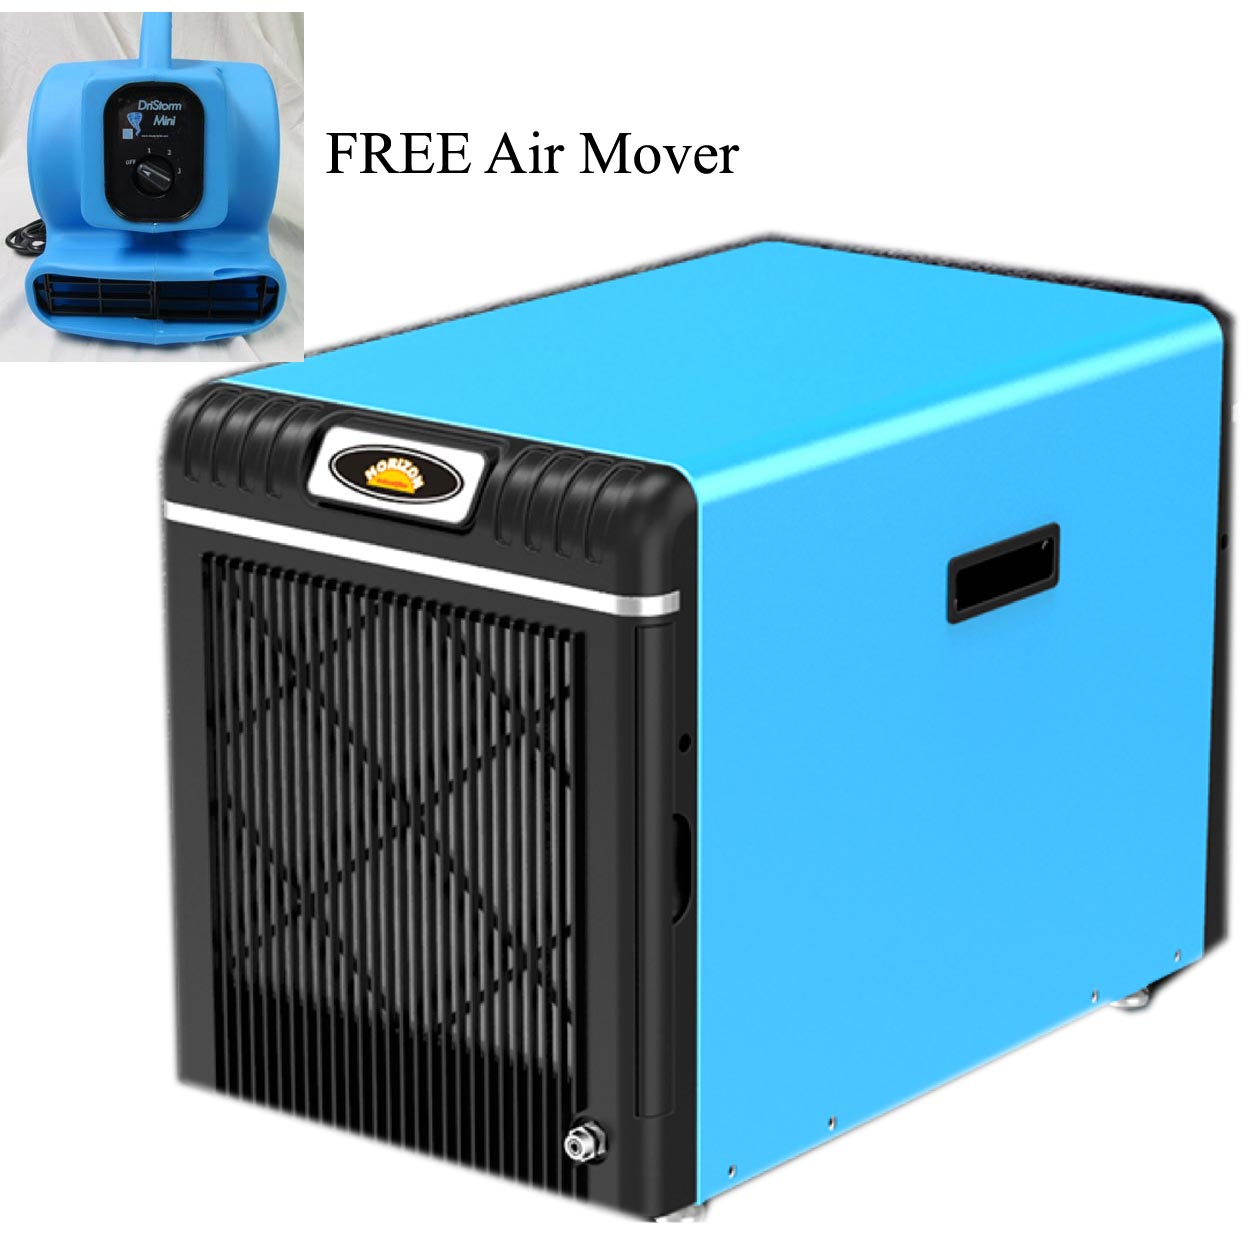 Horizon XP90 Crawl Space Compact Restoration Dehumidifier 90 ppd FREE Shipping FREE Air Mover FREE 3 Yr Warranty Home Owners Only